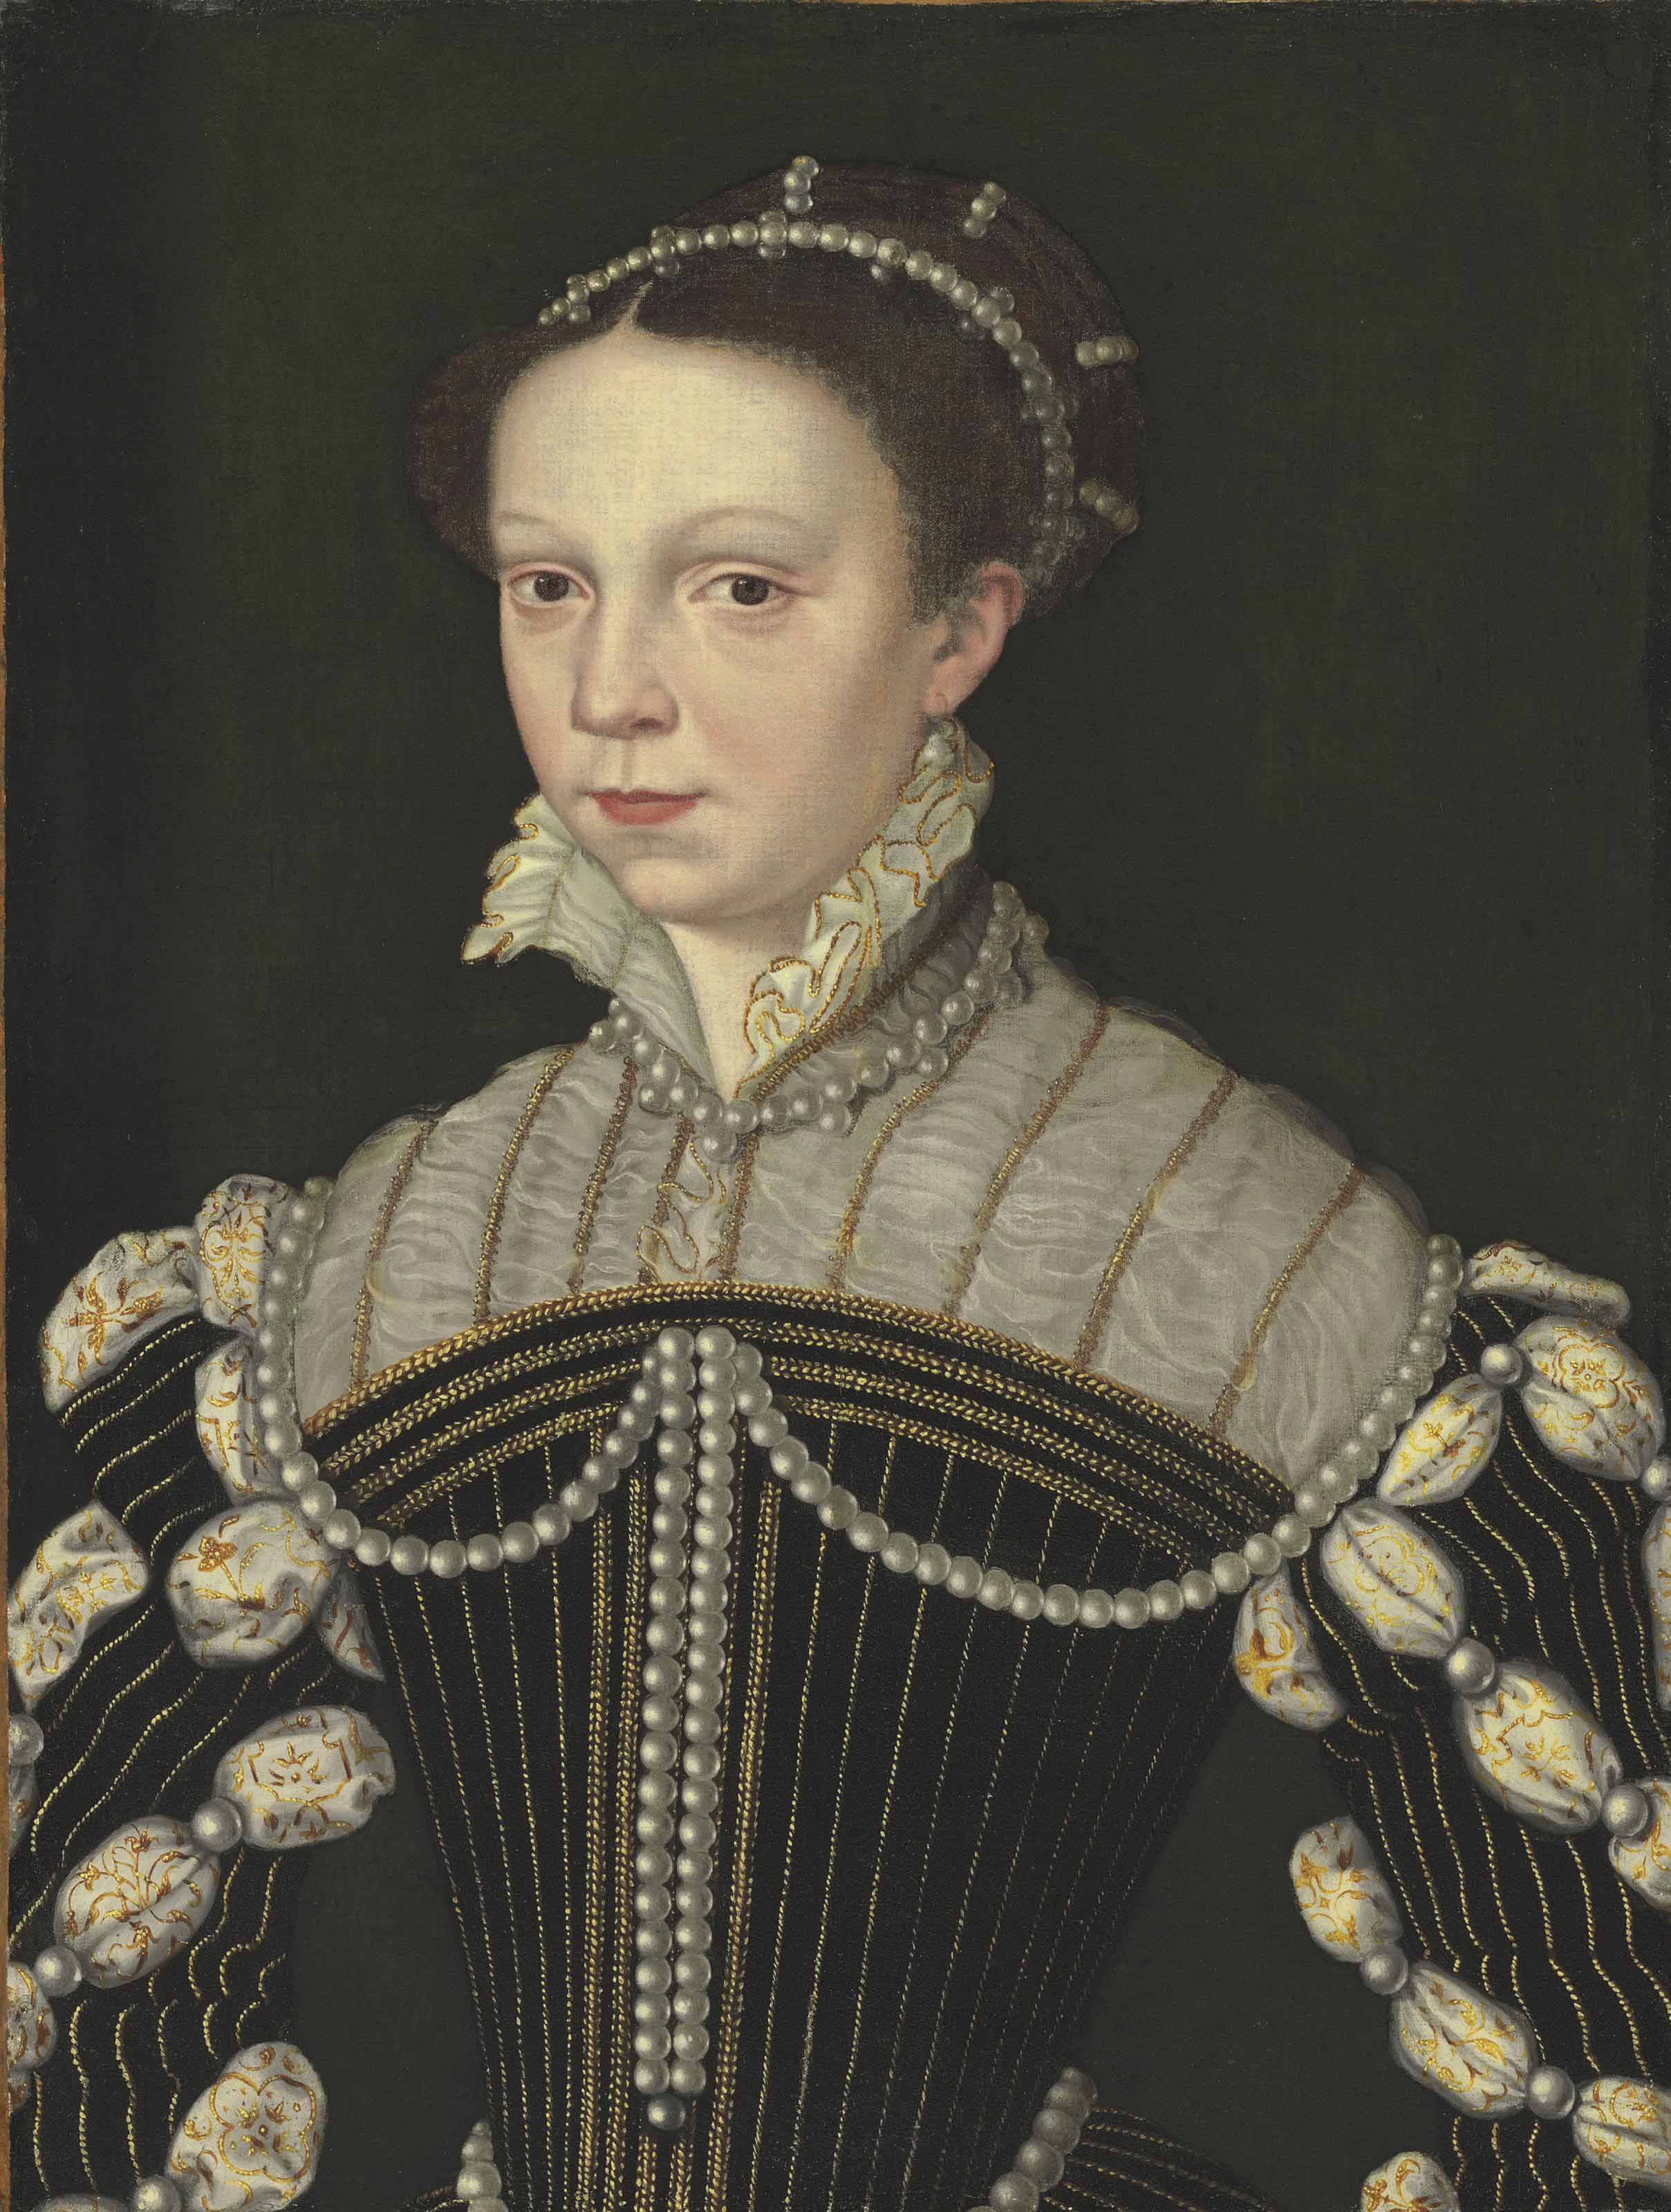 Elisabeth of Valois, Queen of Spain